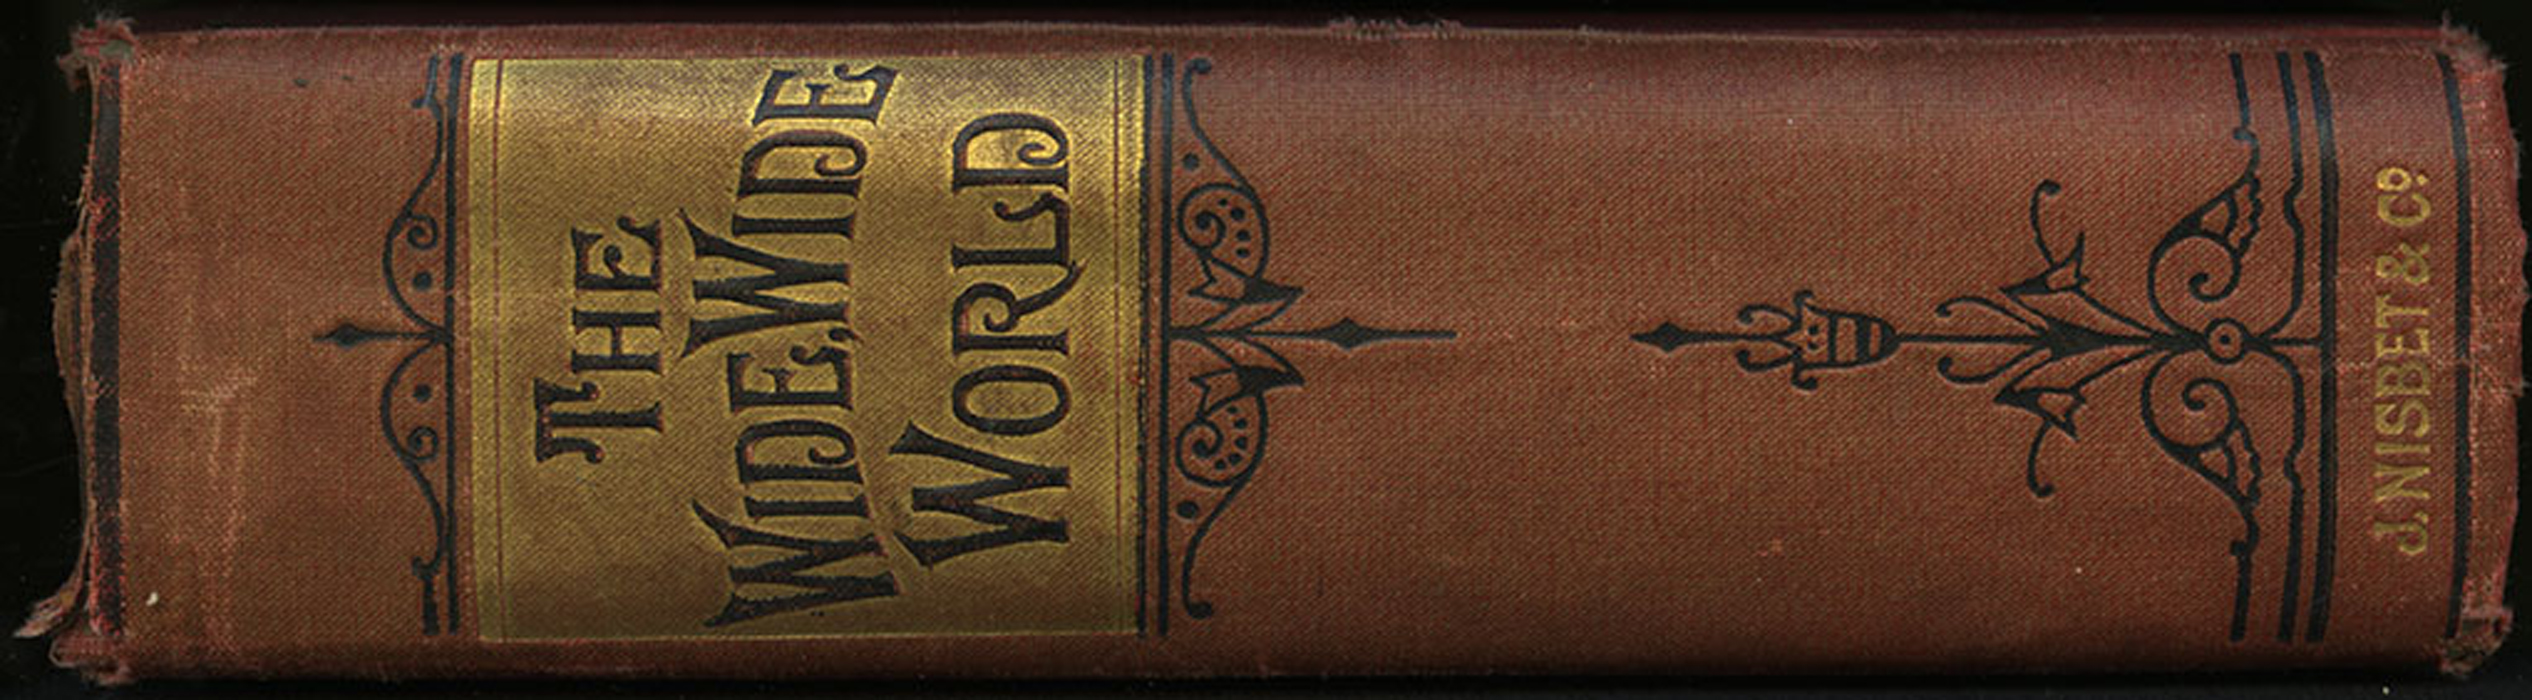 Spine of the [1896] James Nisbet and Co. Edition